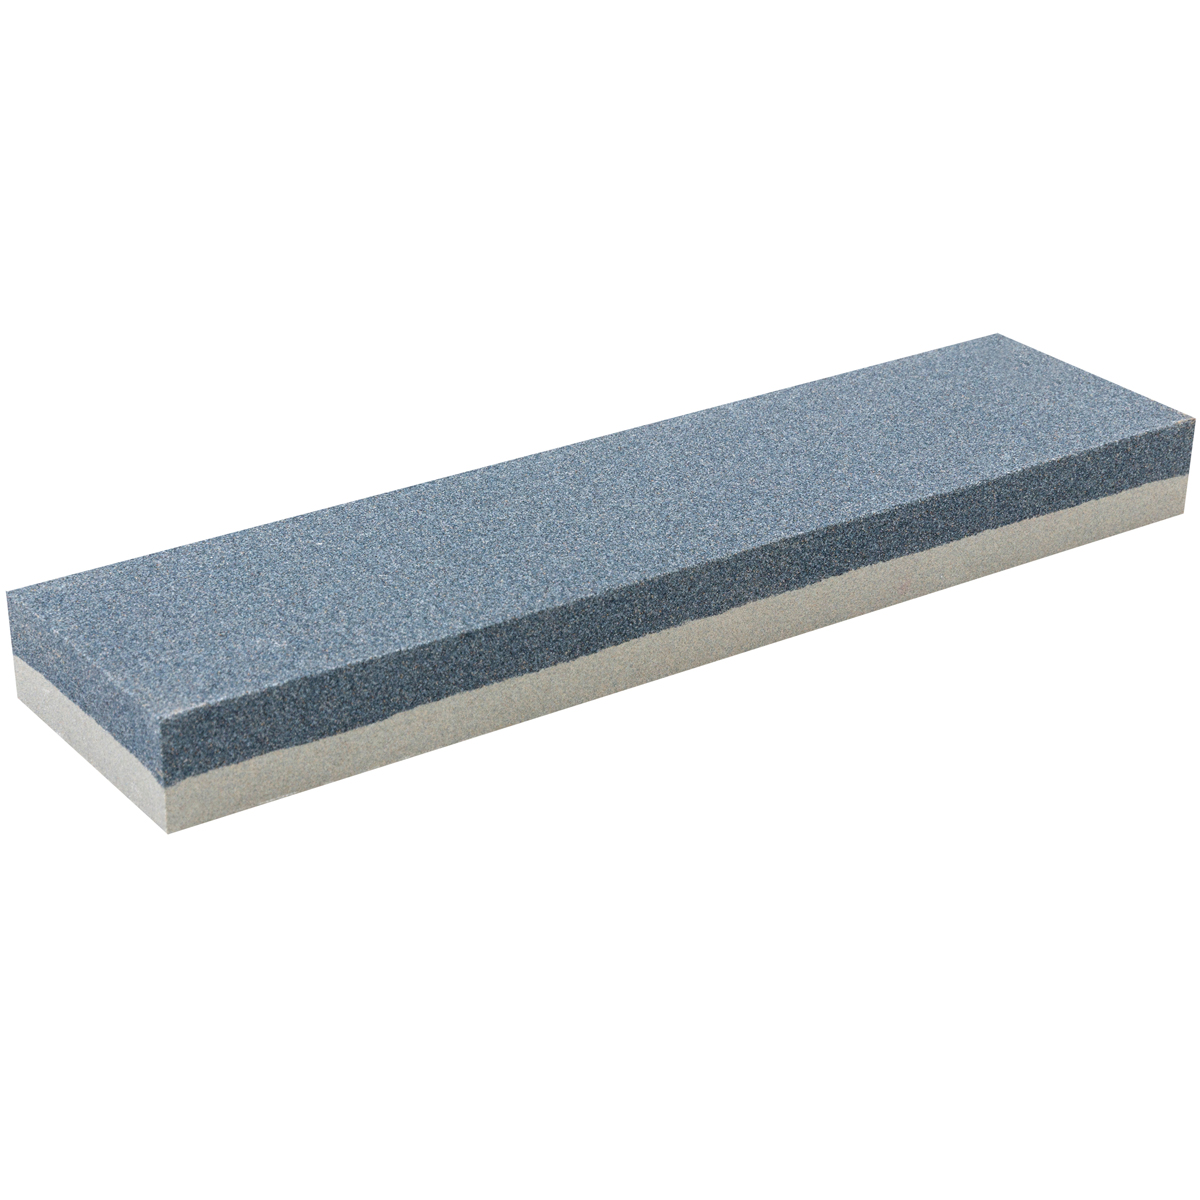 "8"" Dual Grit Combination Sharpening Stone"